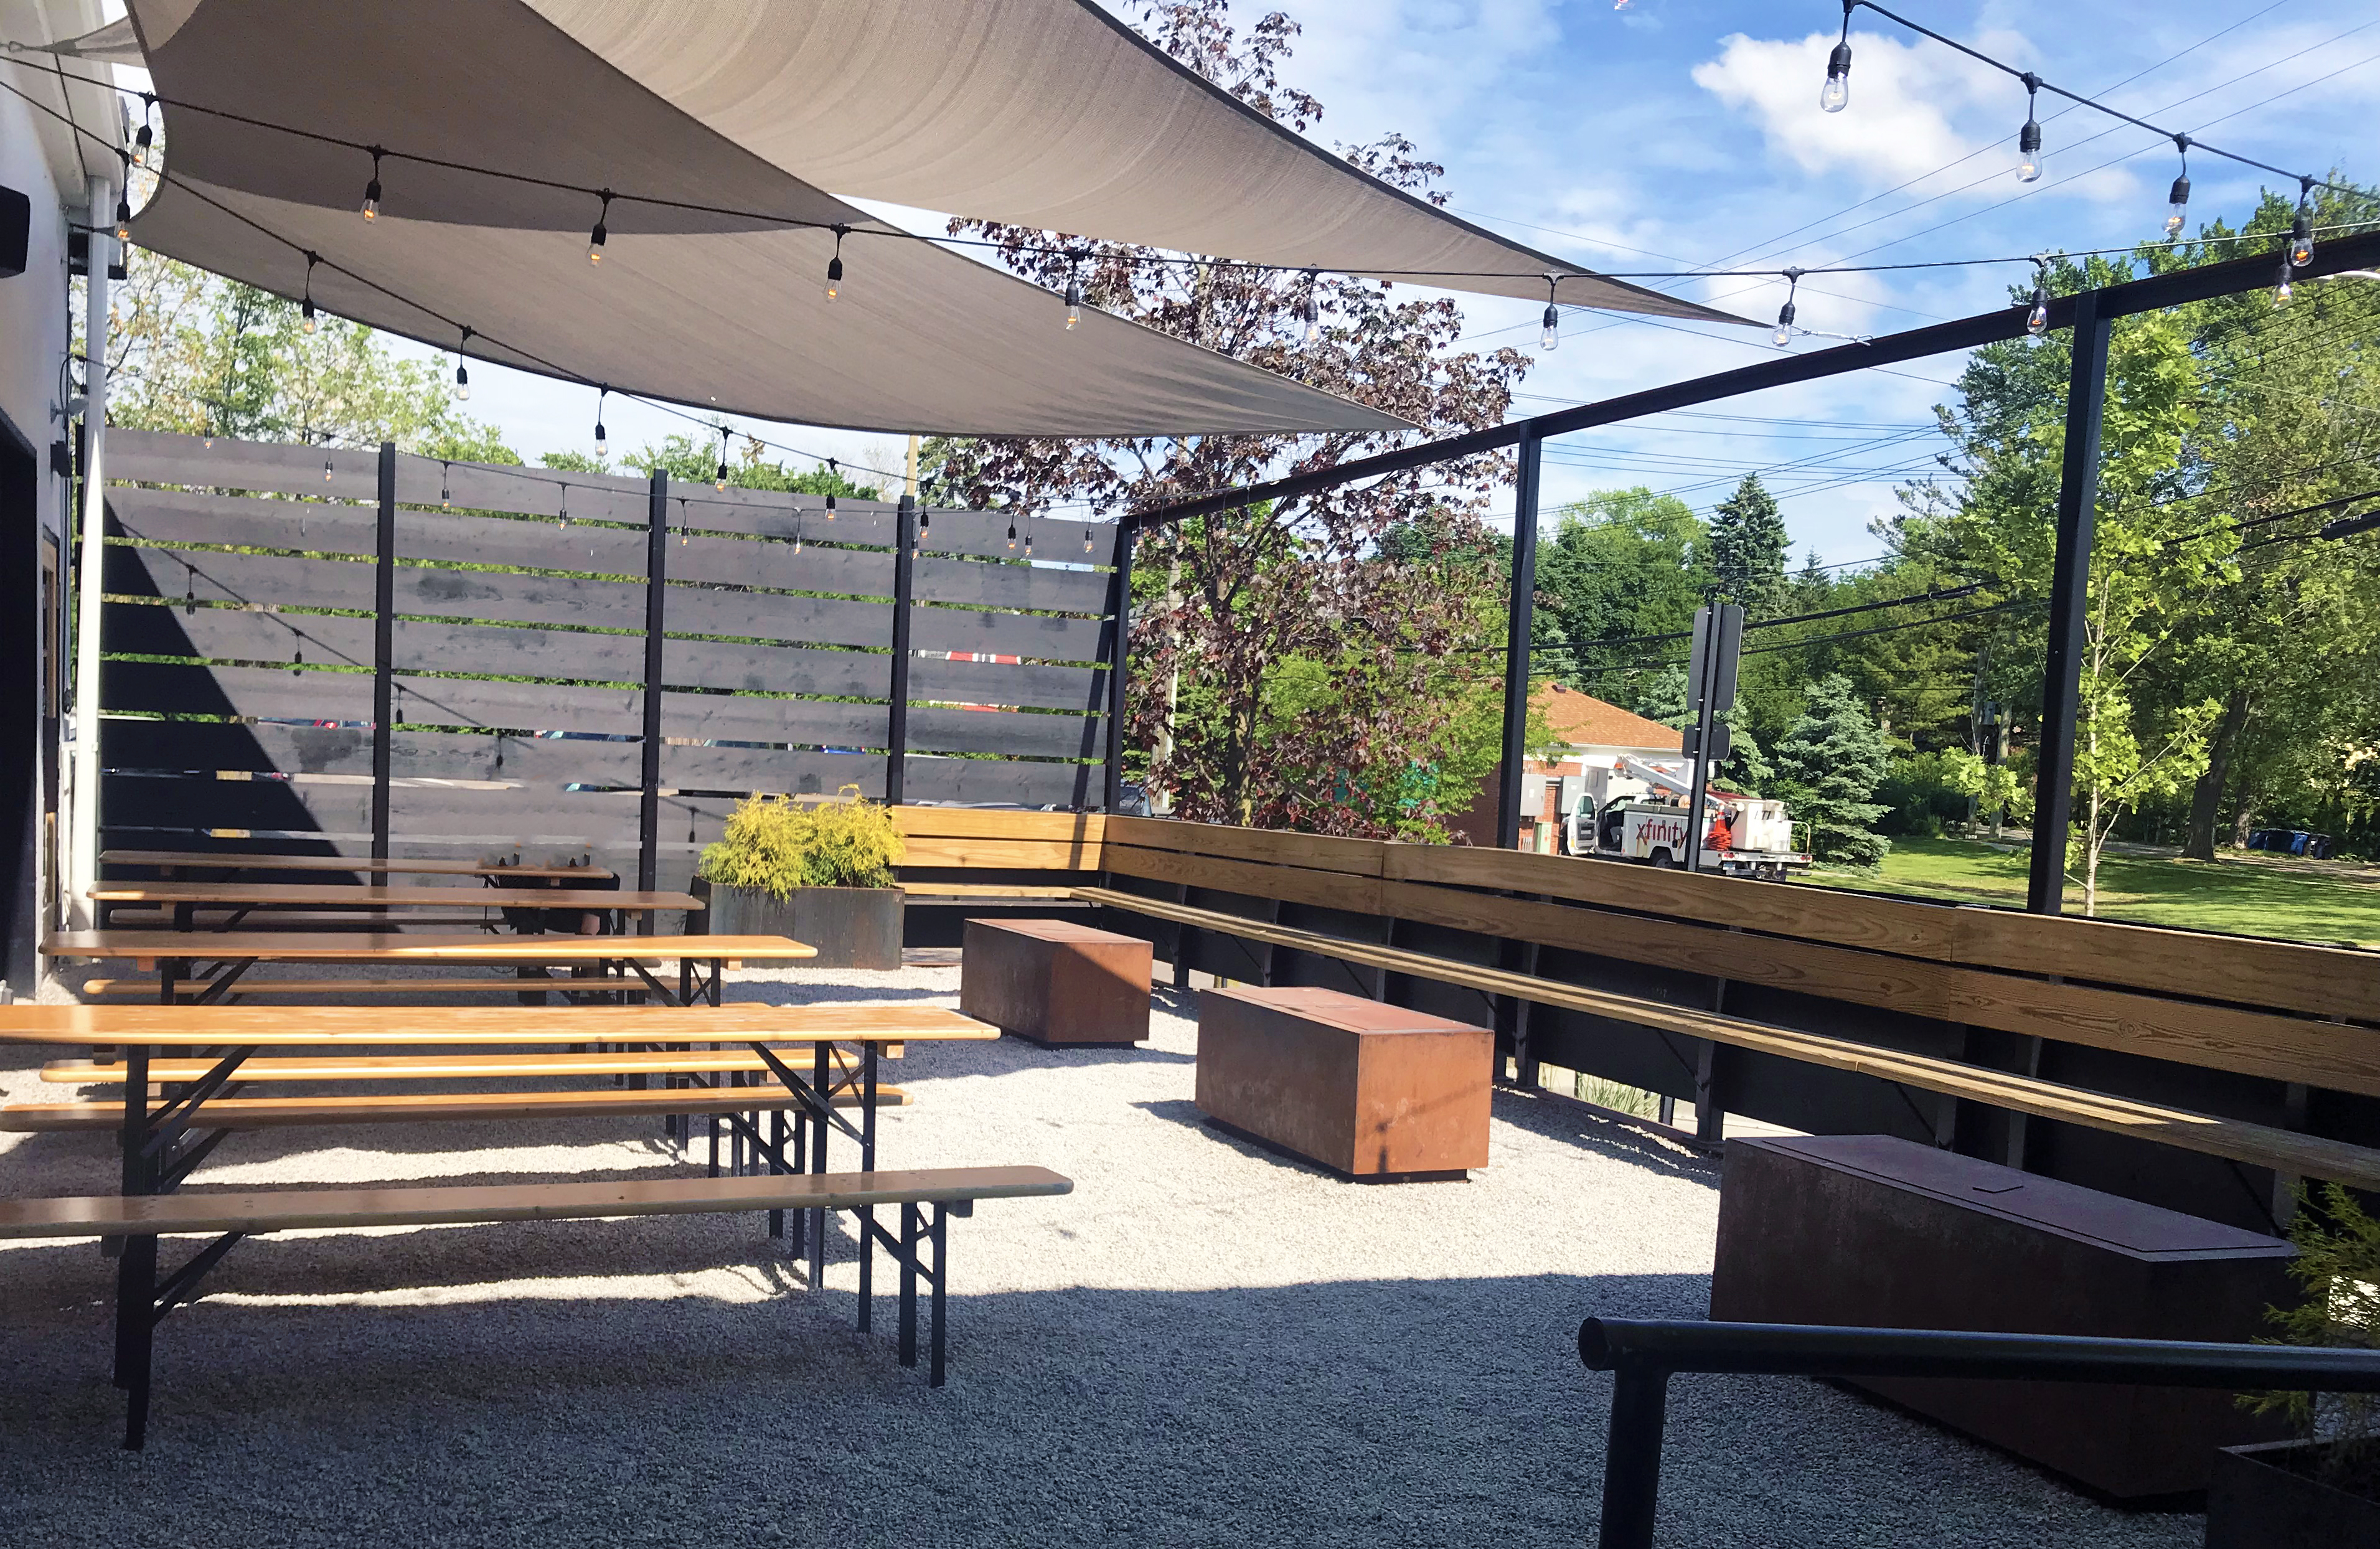 When you approach HOMES Brewery for the first time, the first thing you notice is the two large outdoor patios that sit in front. The building looks approachable and casual, yet vibrant and inviting with pops of lime green, orange and blue sprinkled across the front.